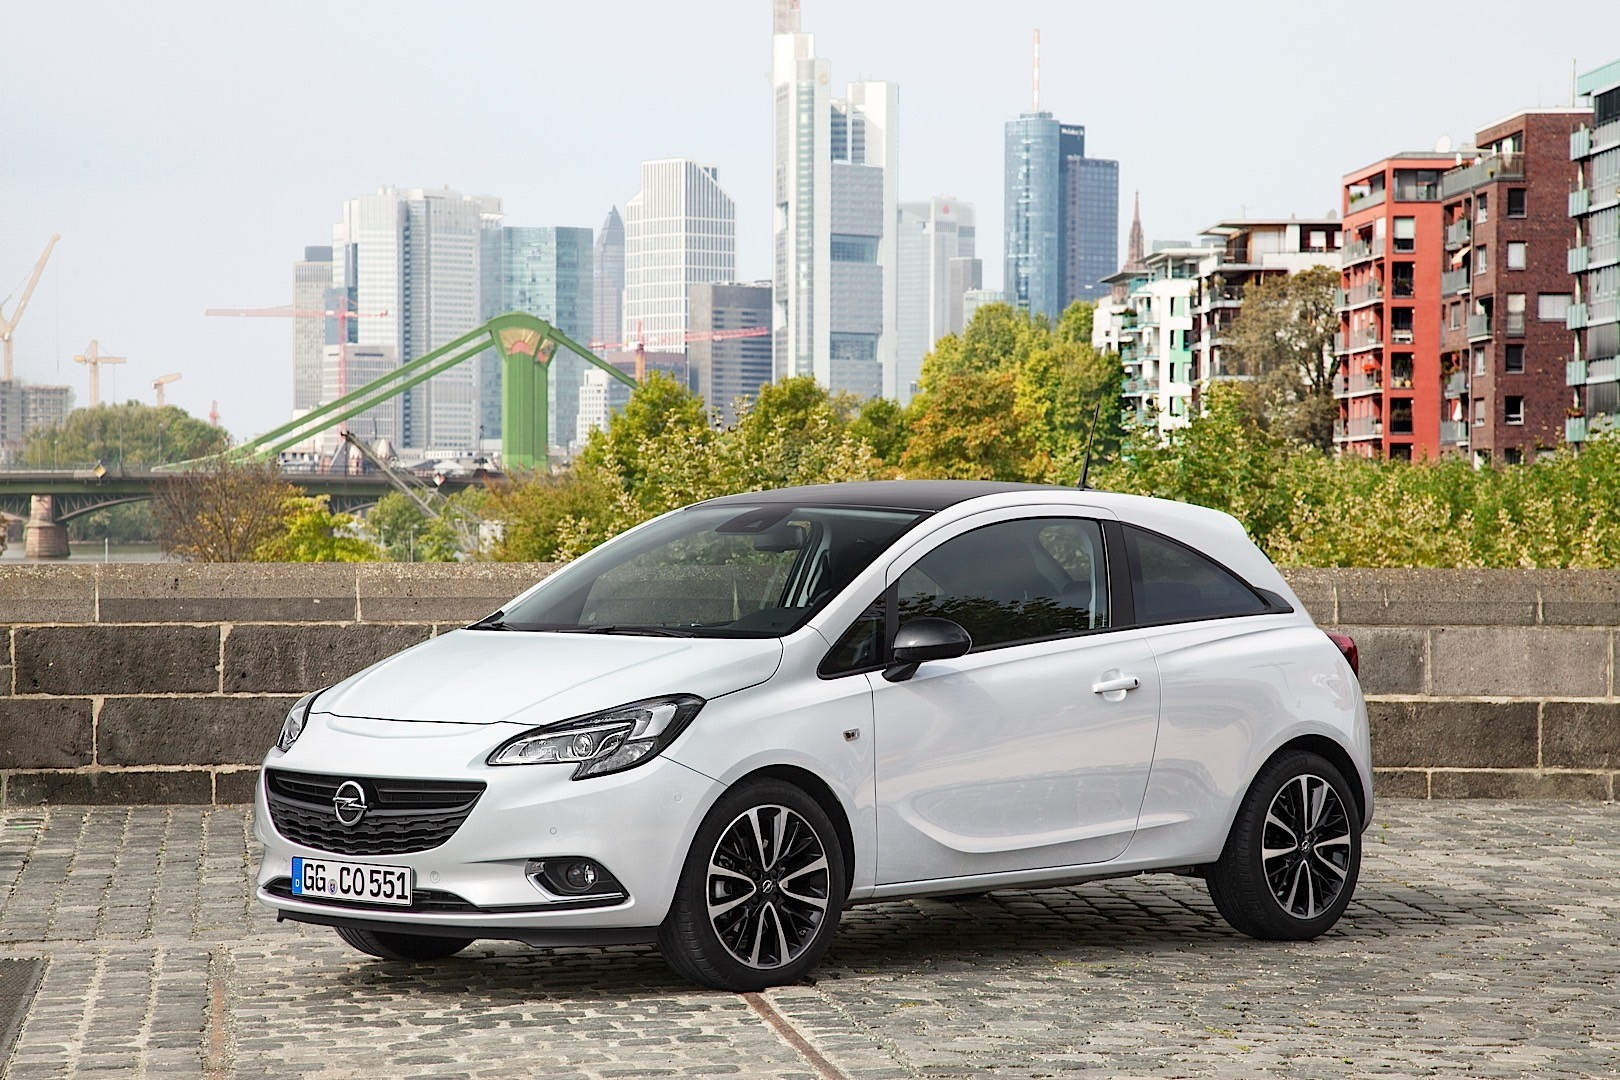 opel corsa 3 doors specs 2014 2015 2016 2017 2018 autoevolution. Black Bedroom Furniture Sets. Home Design Ideas